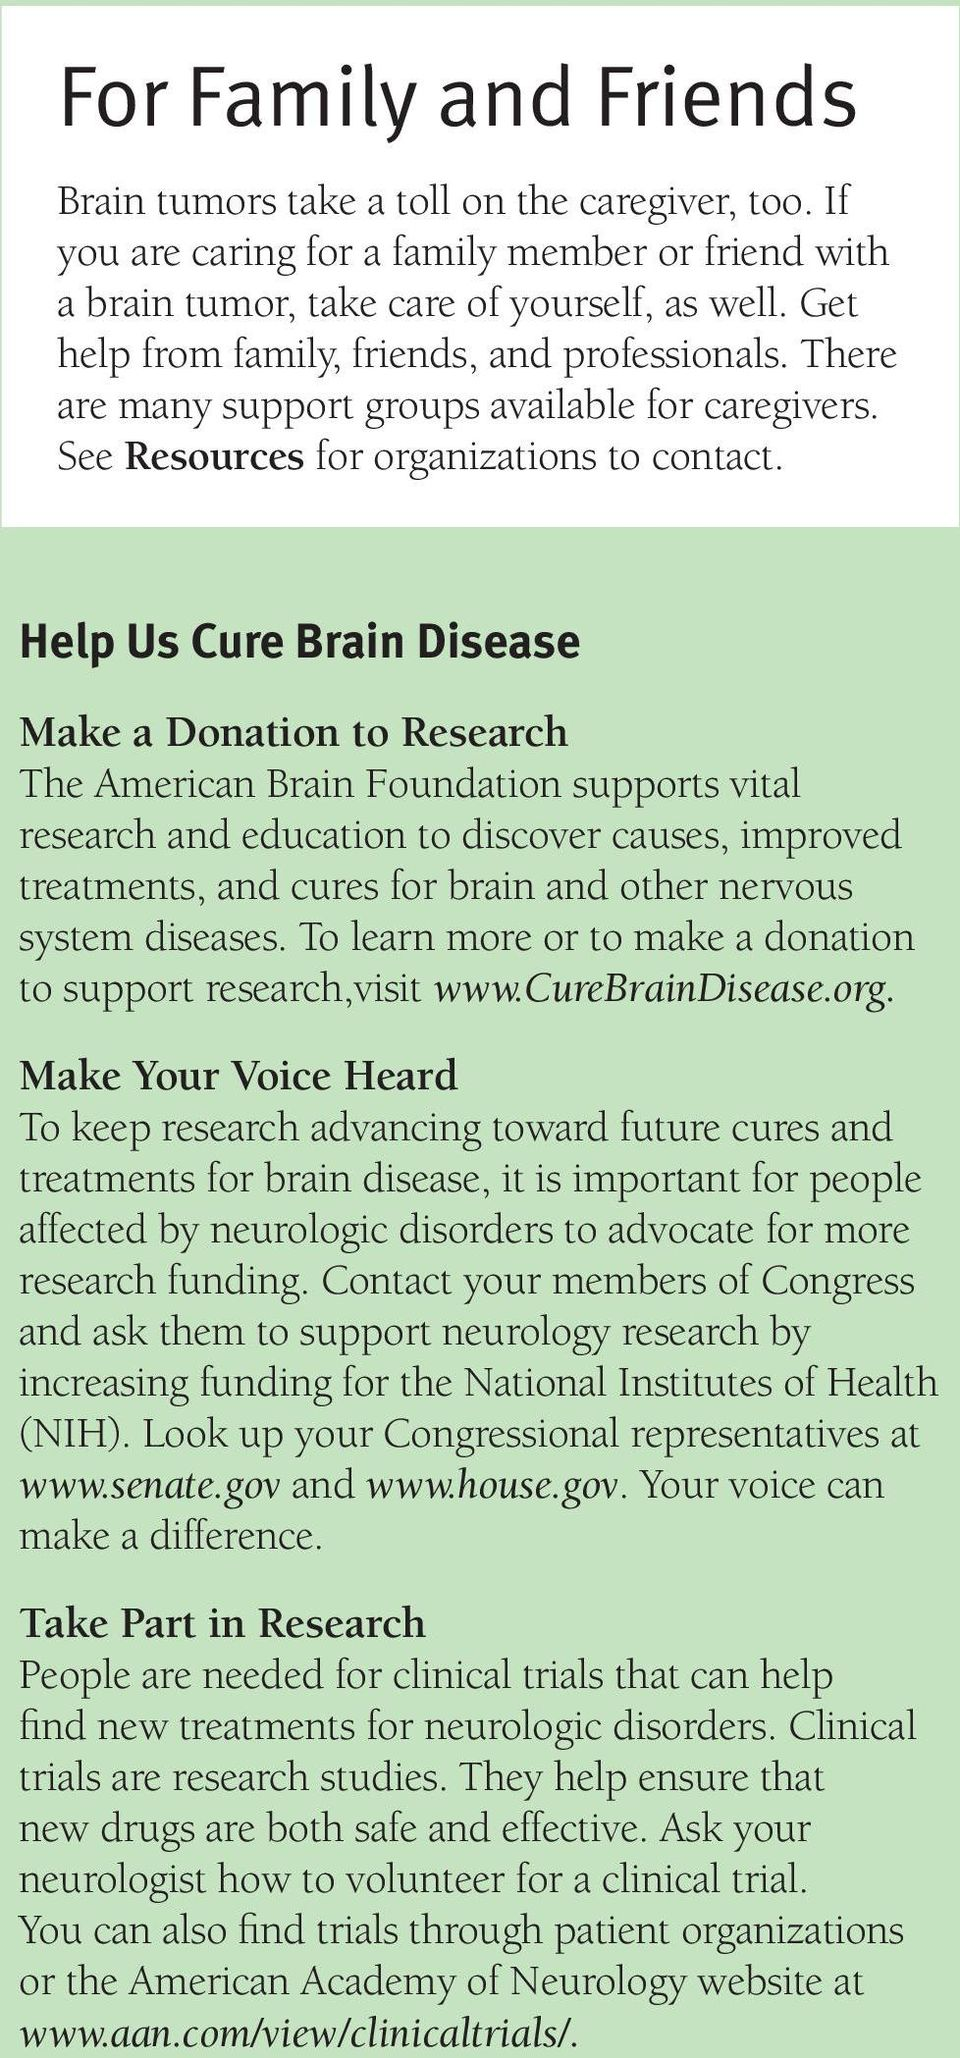 Help Us Cure Brain Disease Make a Donation to Research The American Brain Foundation supports vital research and education to discover causes, improved treatments, and cures for brain and other